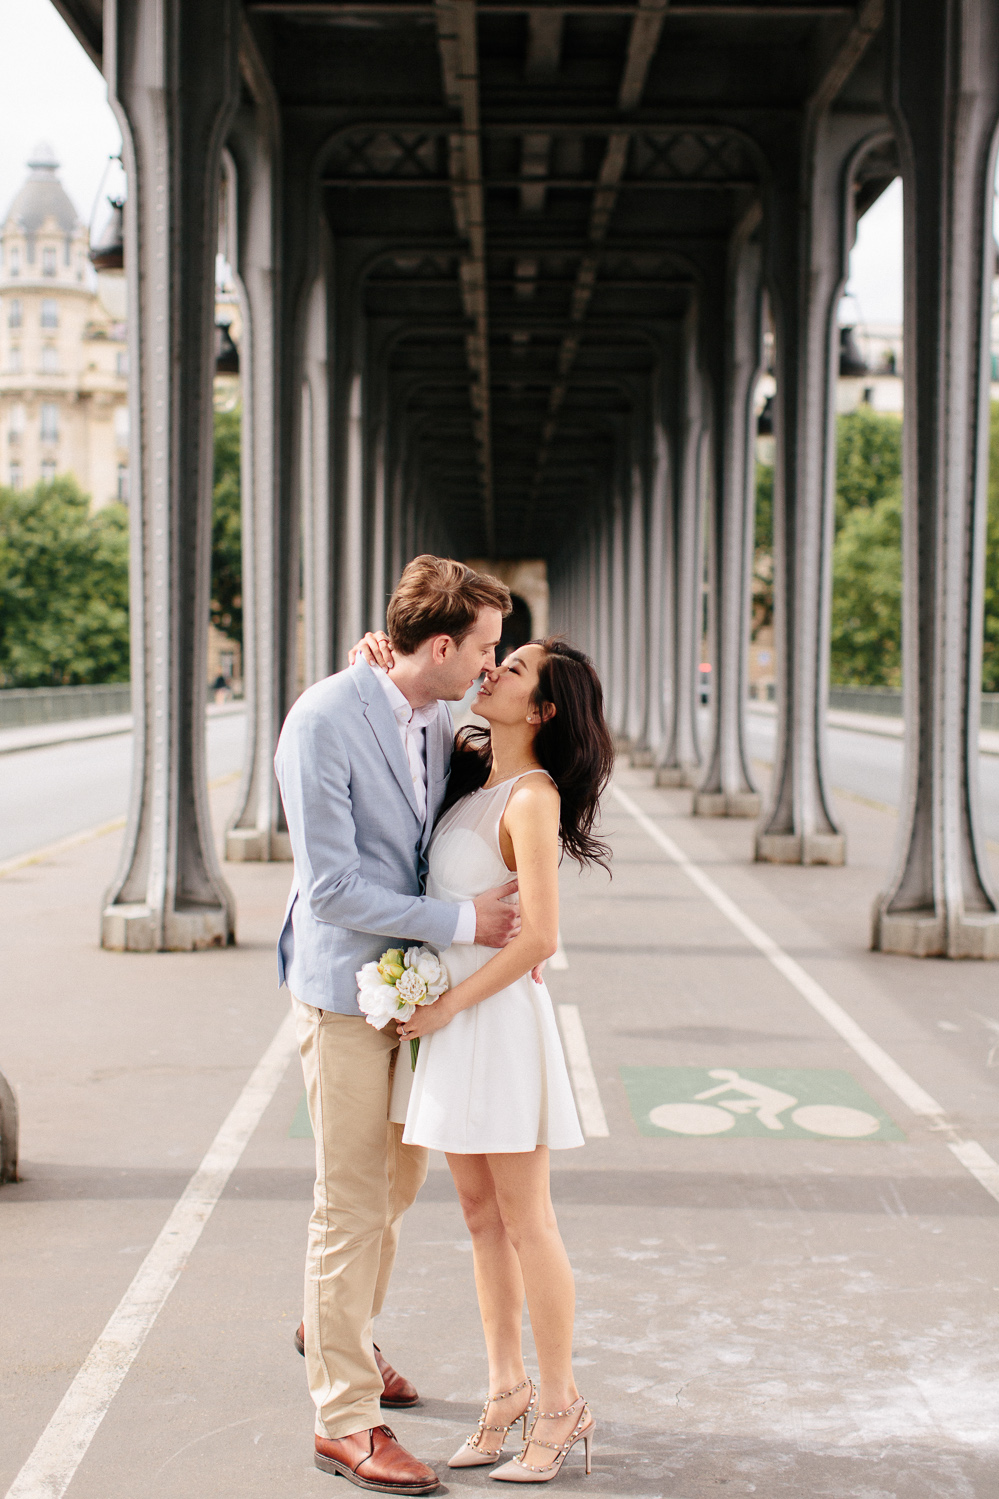 photographe mariage paris engagement session wedding photographer